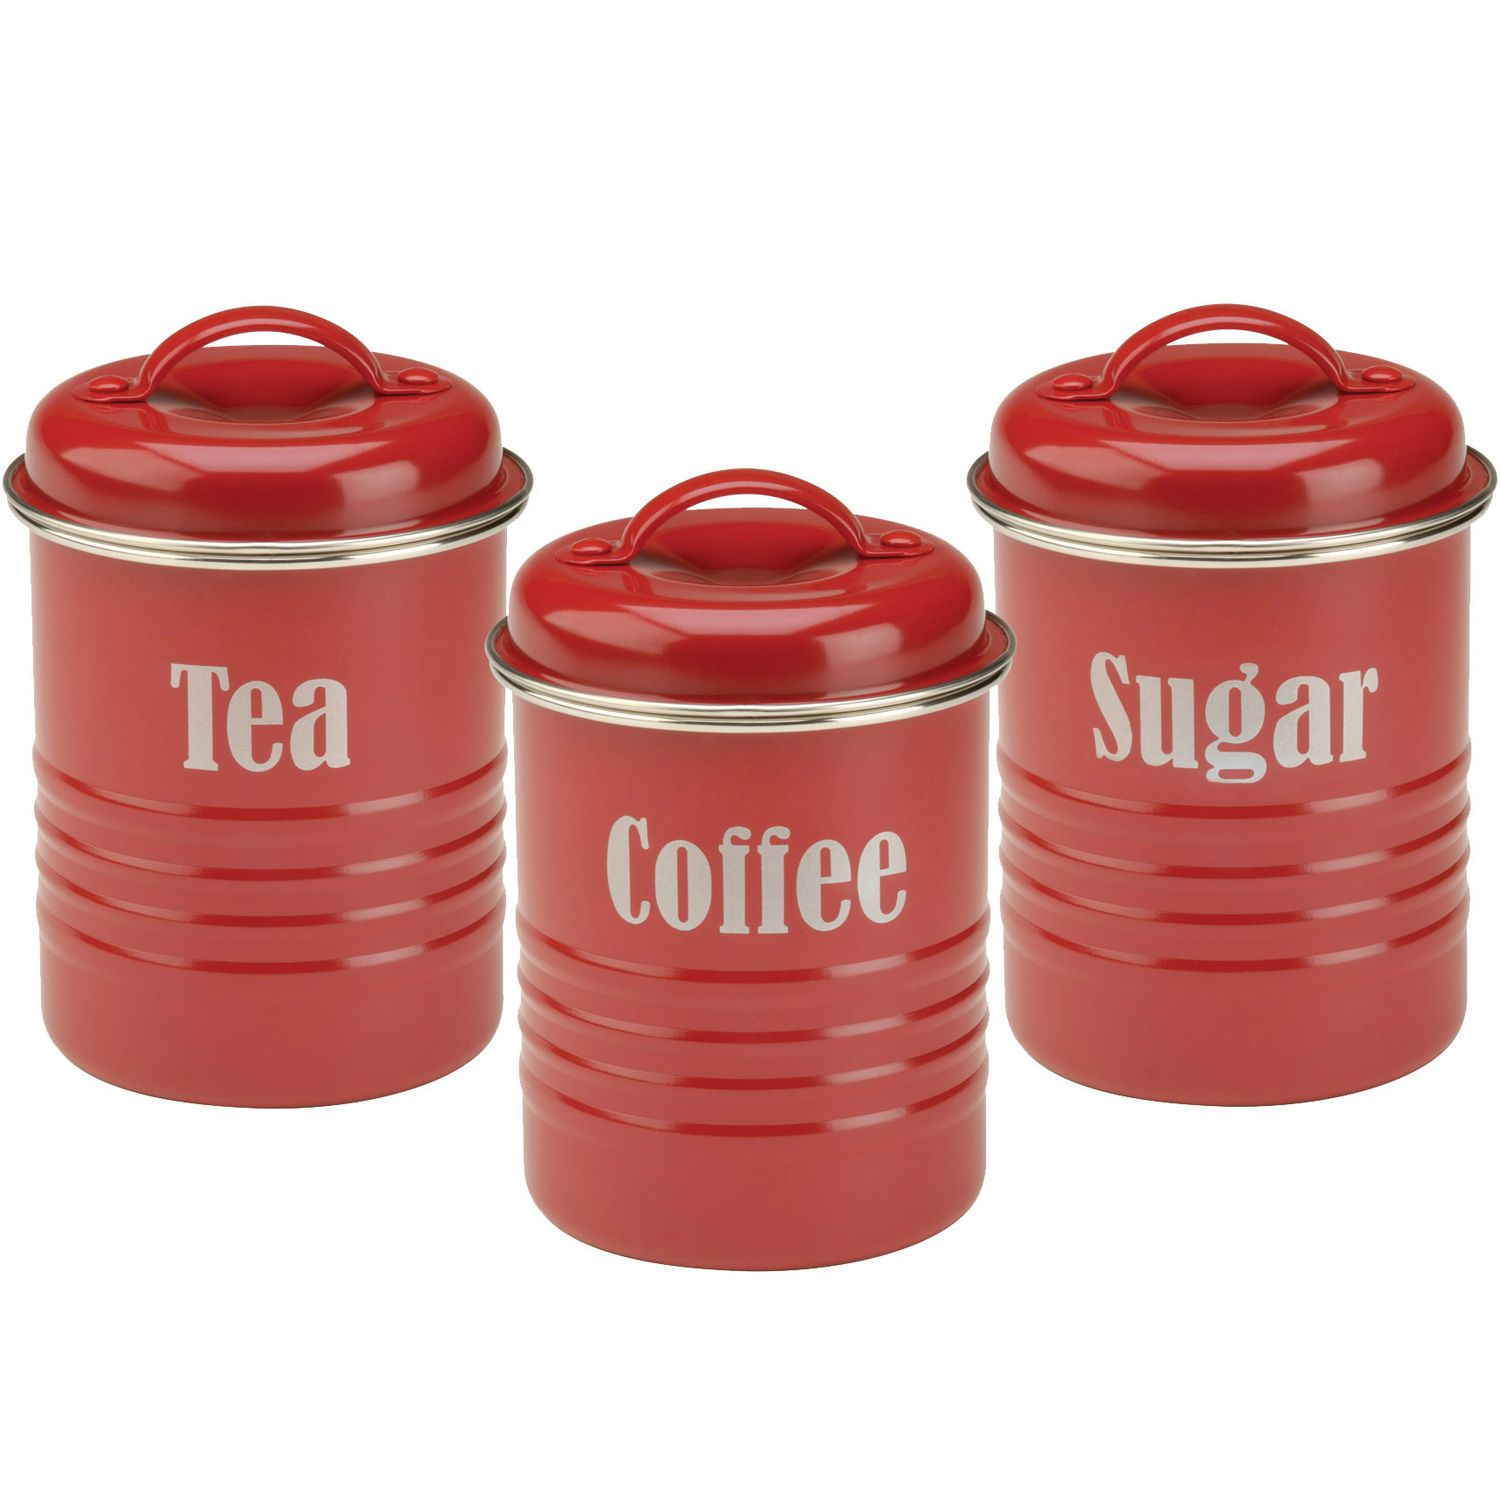 Three-piece enameled kitchen canister set, in a vintage style with white enamel and black trim and lettering - COFFEE, TEA, SUGAR. Description from ebay.com. I searched for this on bing.com/images